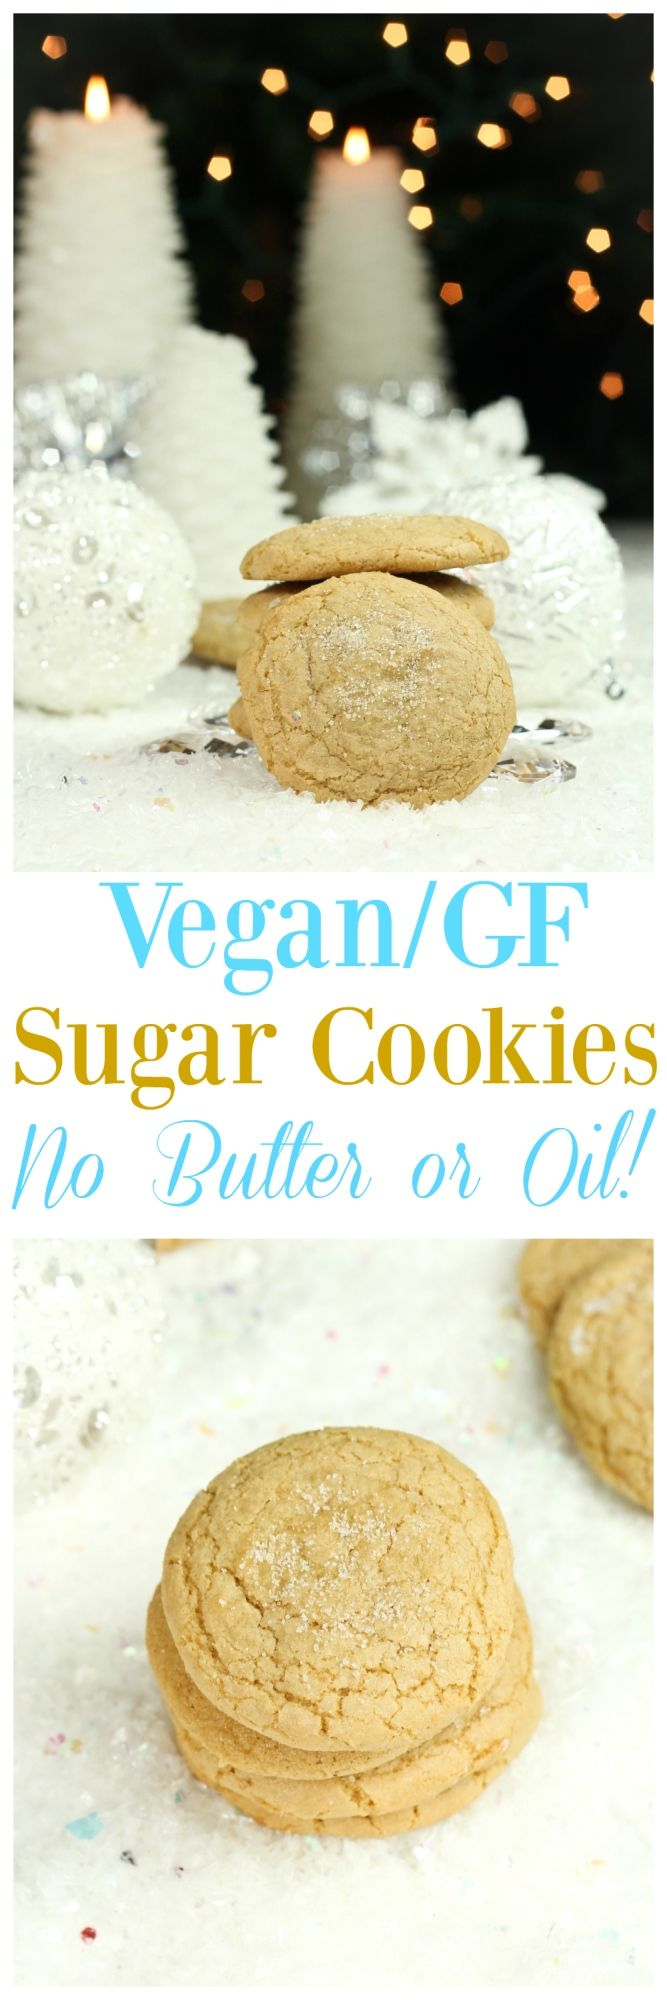 ONLY 8 ingredients! Yes, it is possible to make Sugar Cookies that are delicious with NO oil or butter! These are vegan, gluten-free and soft and sweet! No chilling of the dough required and they are ready in half an hour!